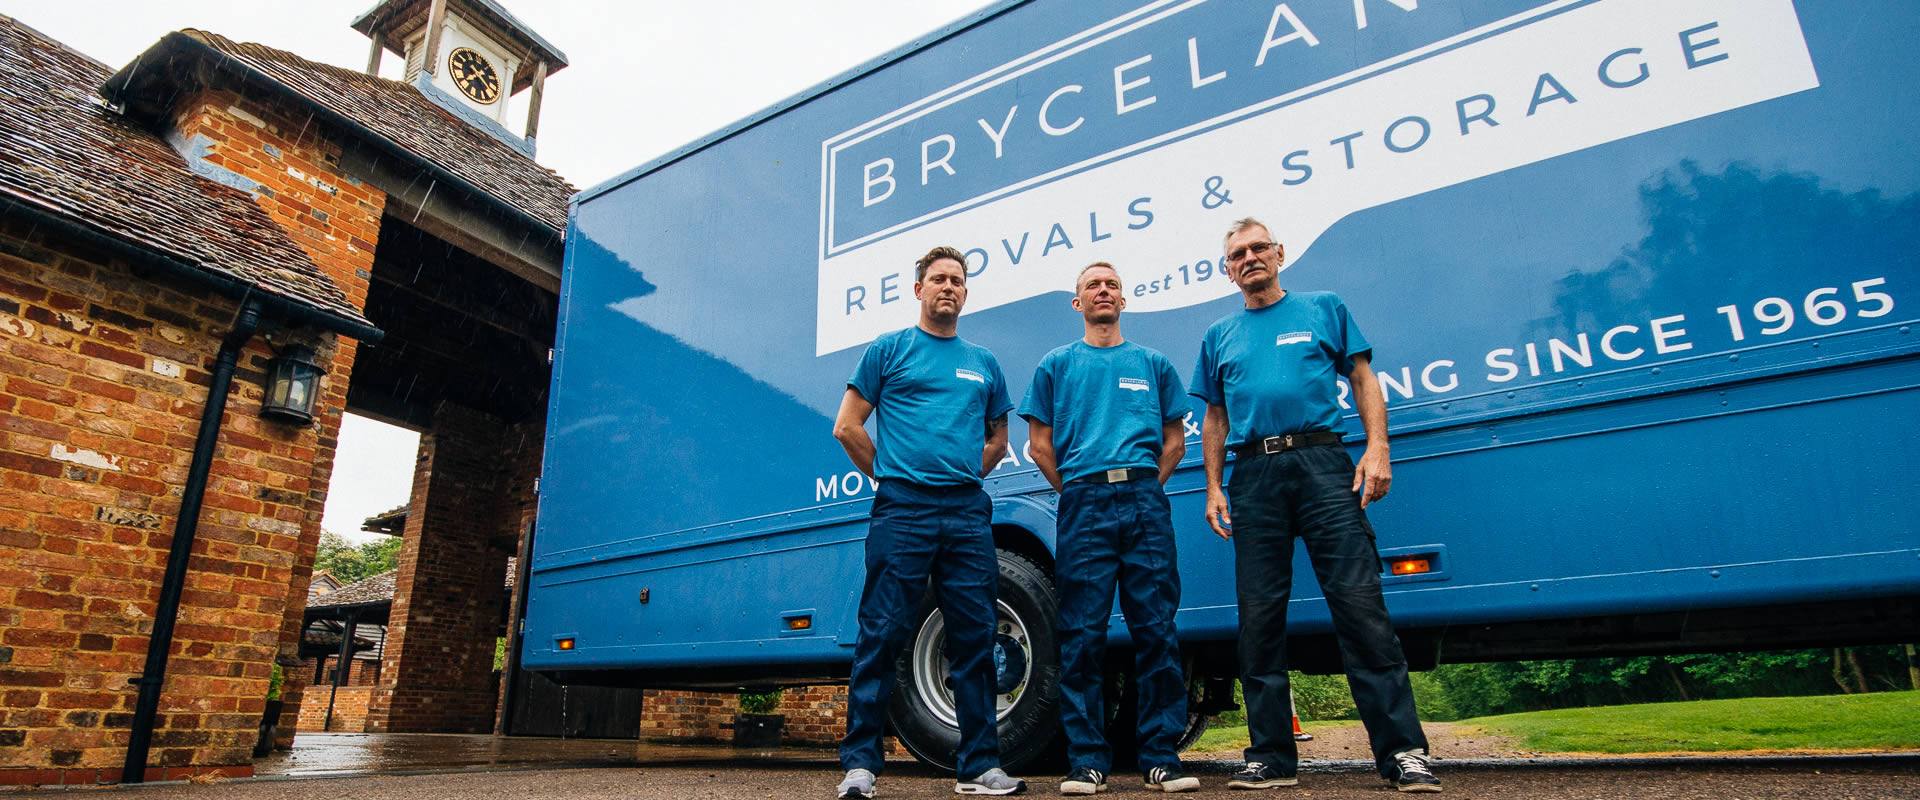 BRYCELANDS. HERTFORDSHIRE REMOVALS & STORAGE